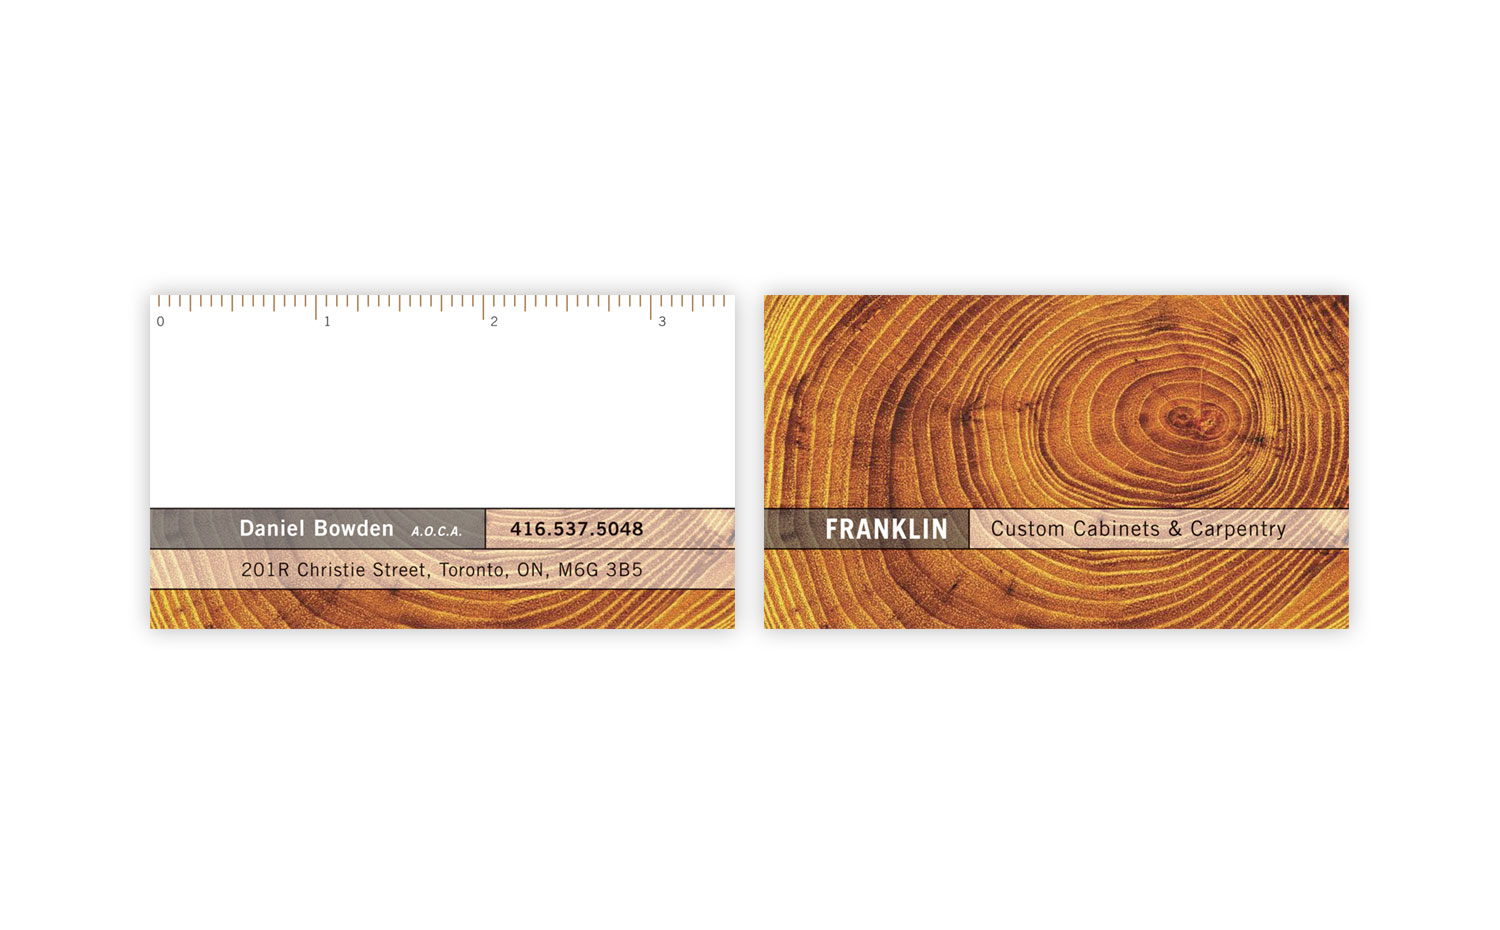 Daniel Bowden Carpentry business card